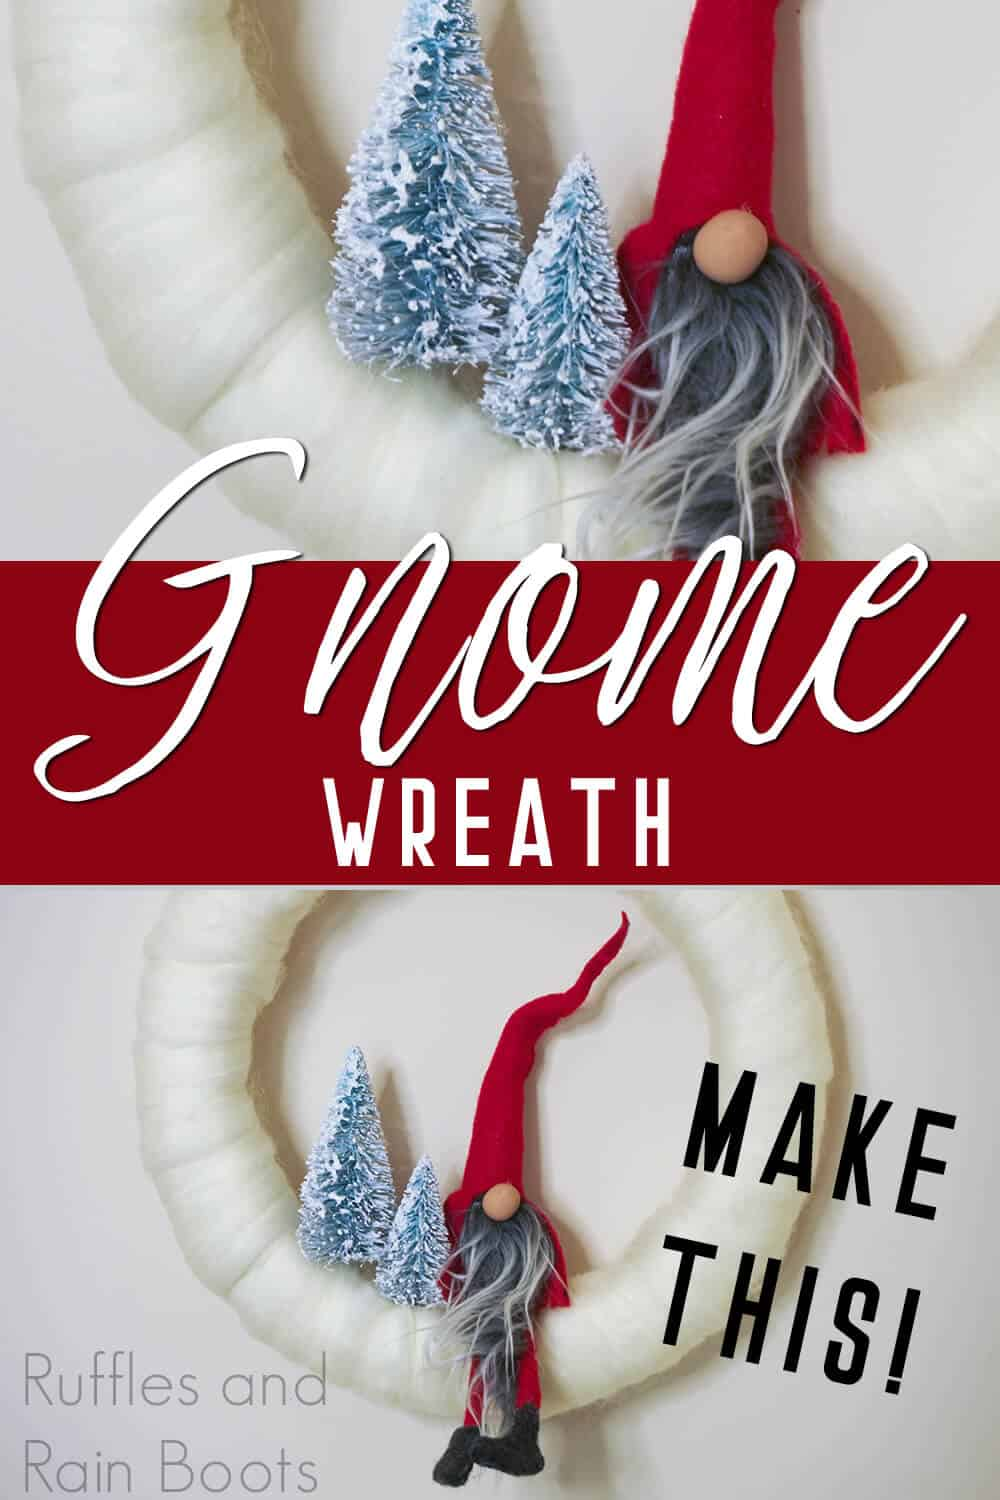 tomte with text which reads gnome wreath make this